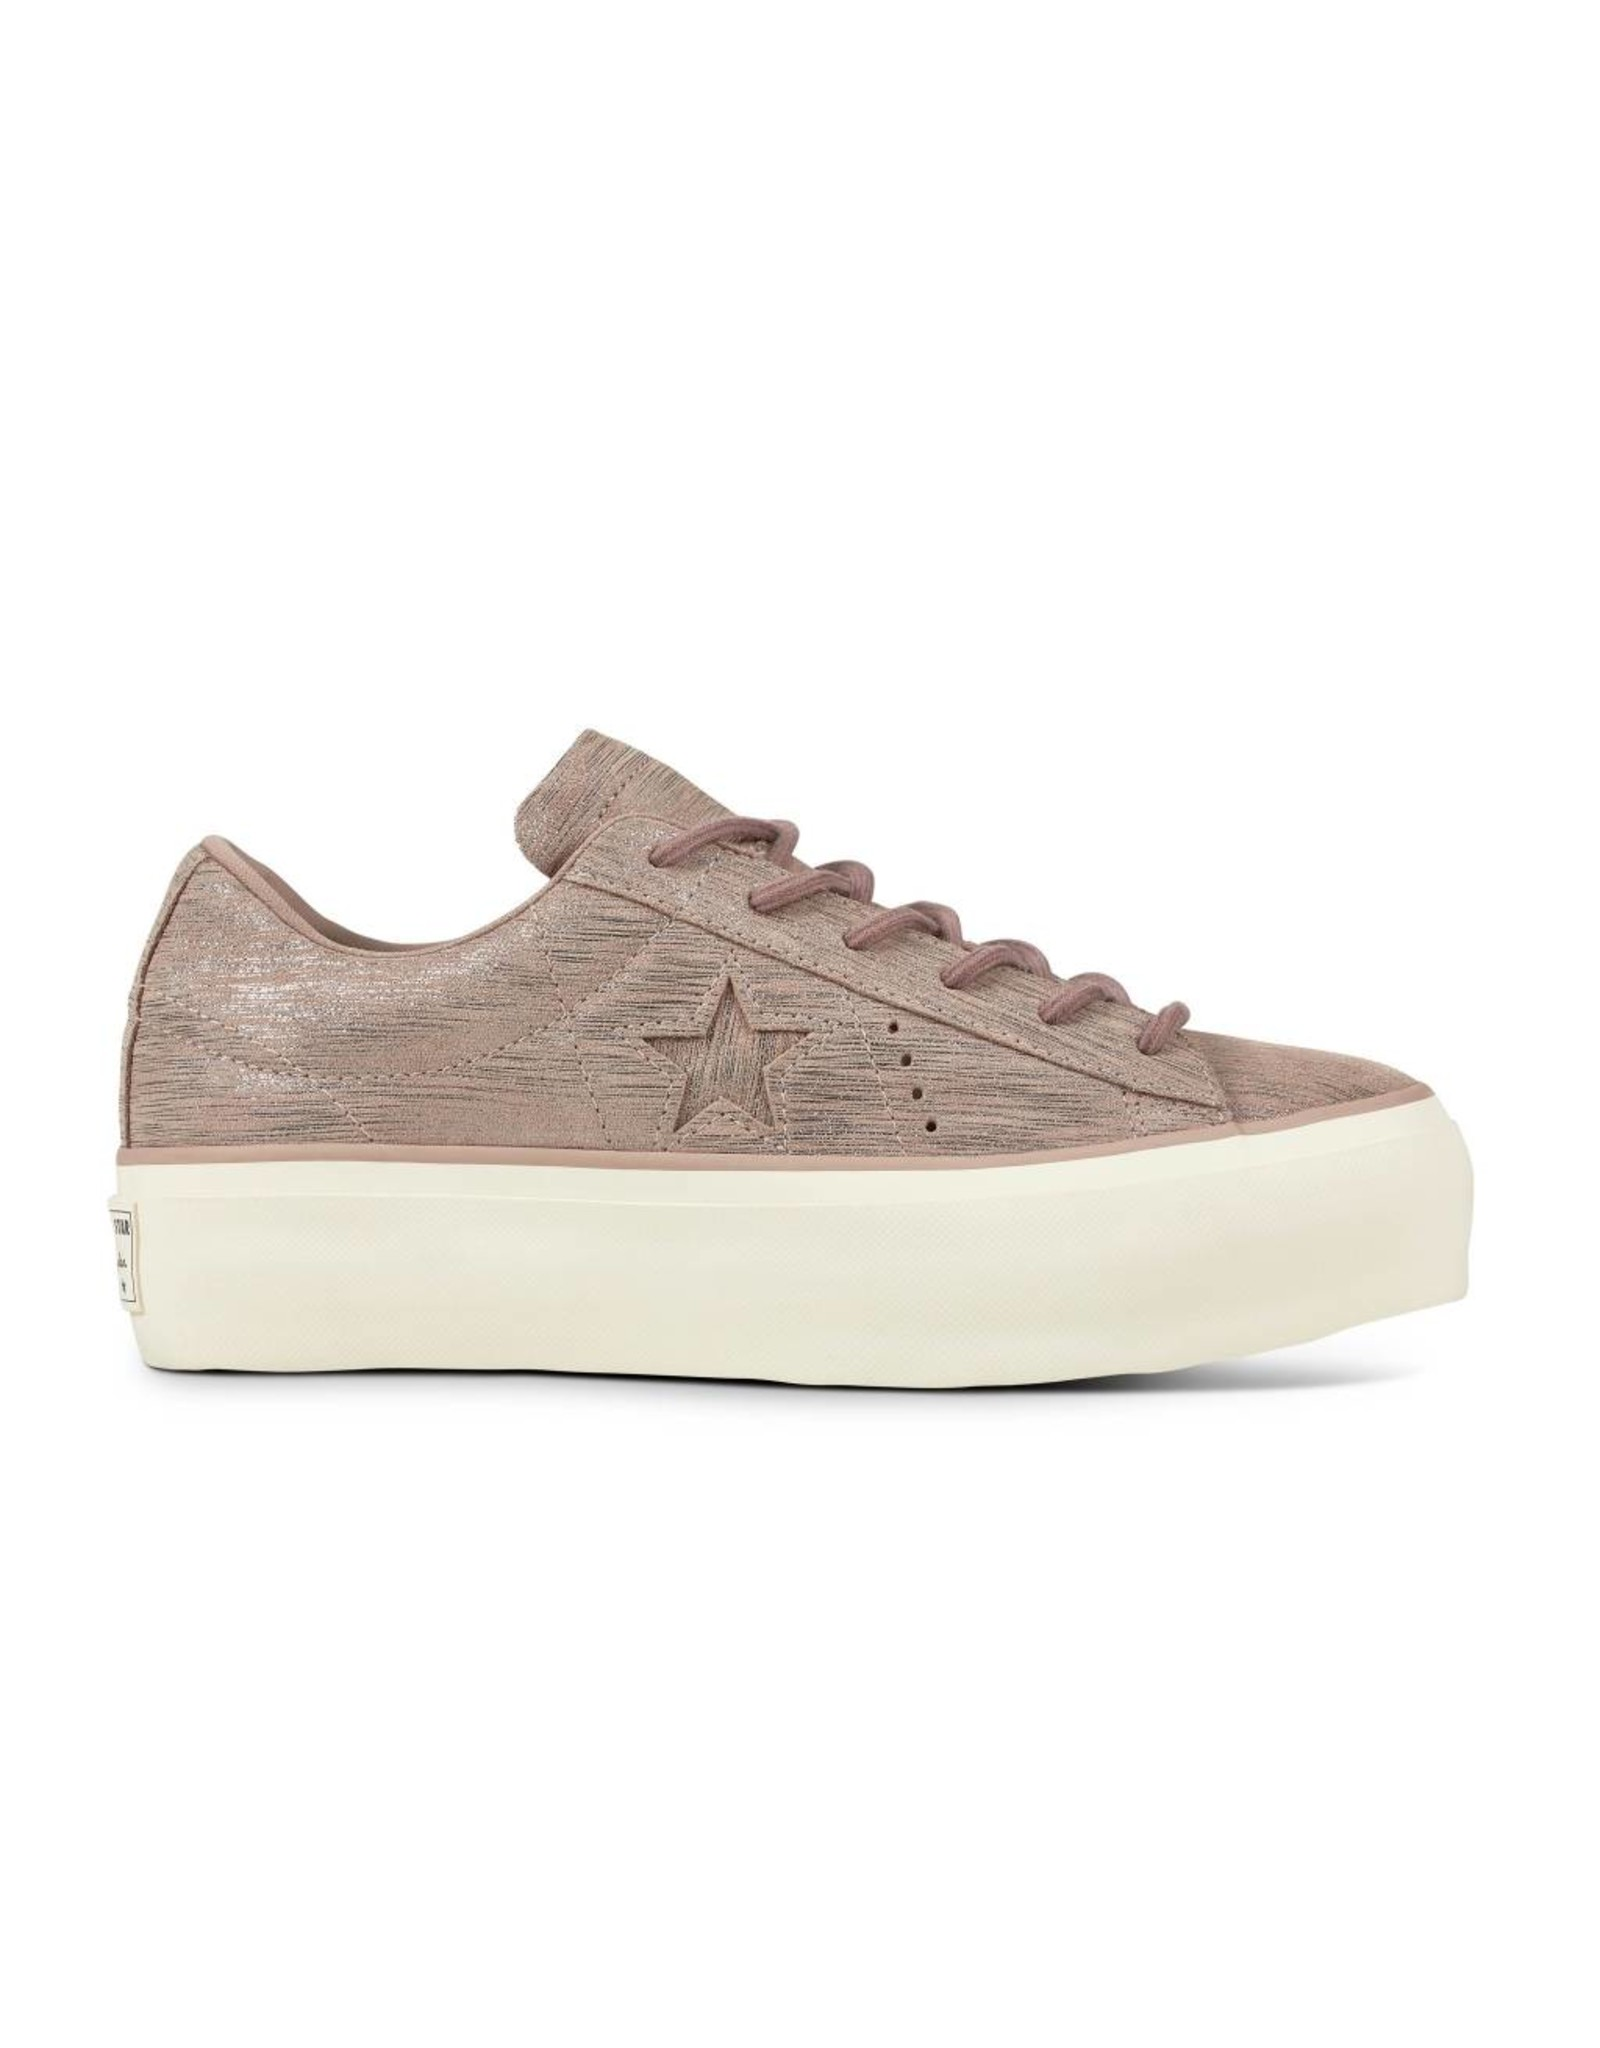 CONVERSE ONE STAR PLATFORM OX DIFFUSED TAUPE C887PD-561771C